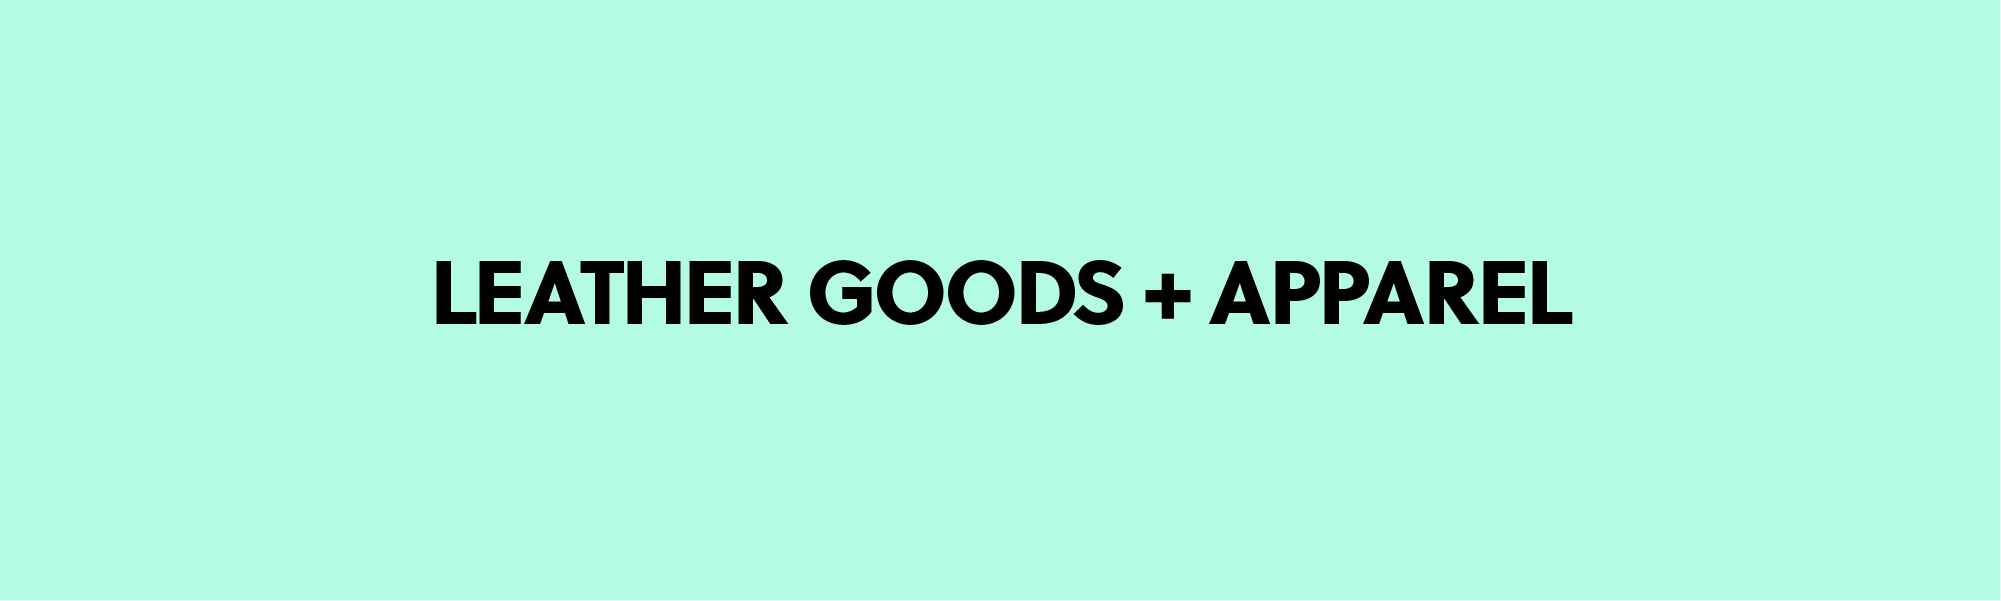 Andrea Pascual Designer Links Leather Goods and Apparel